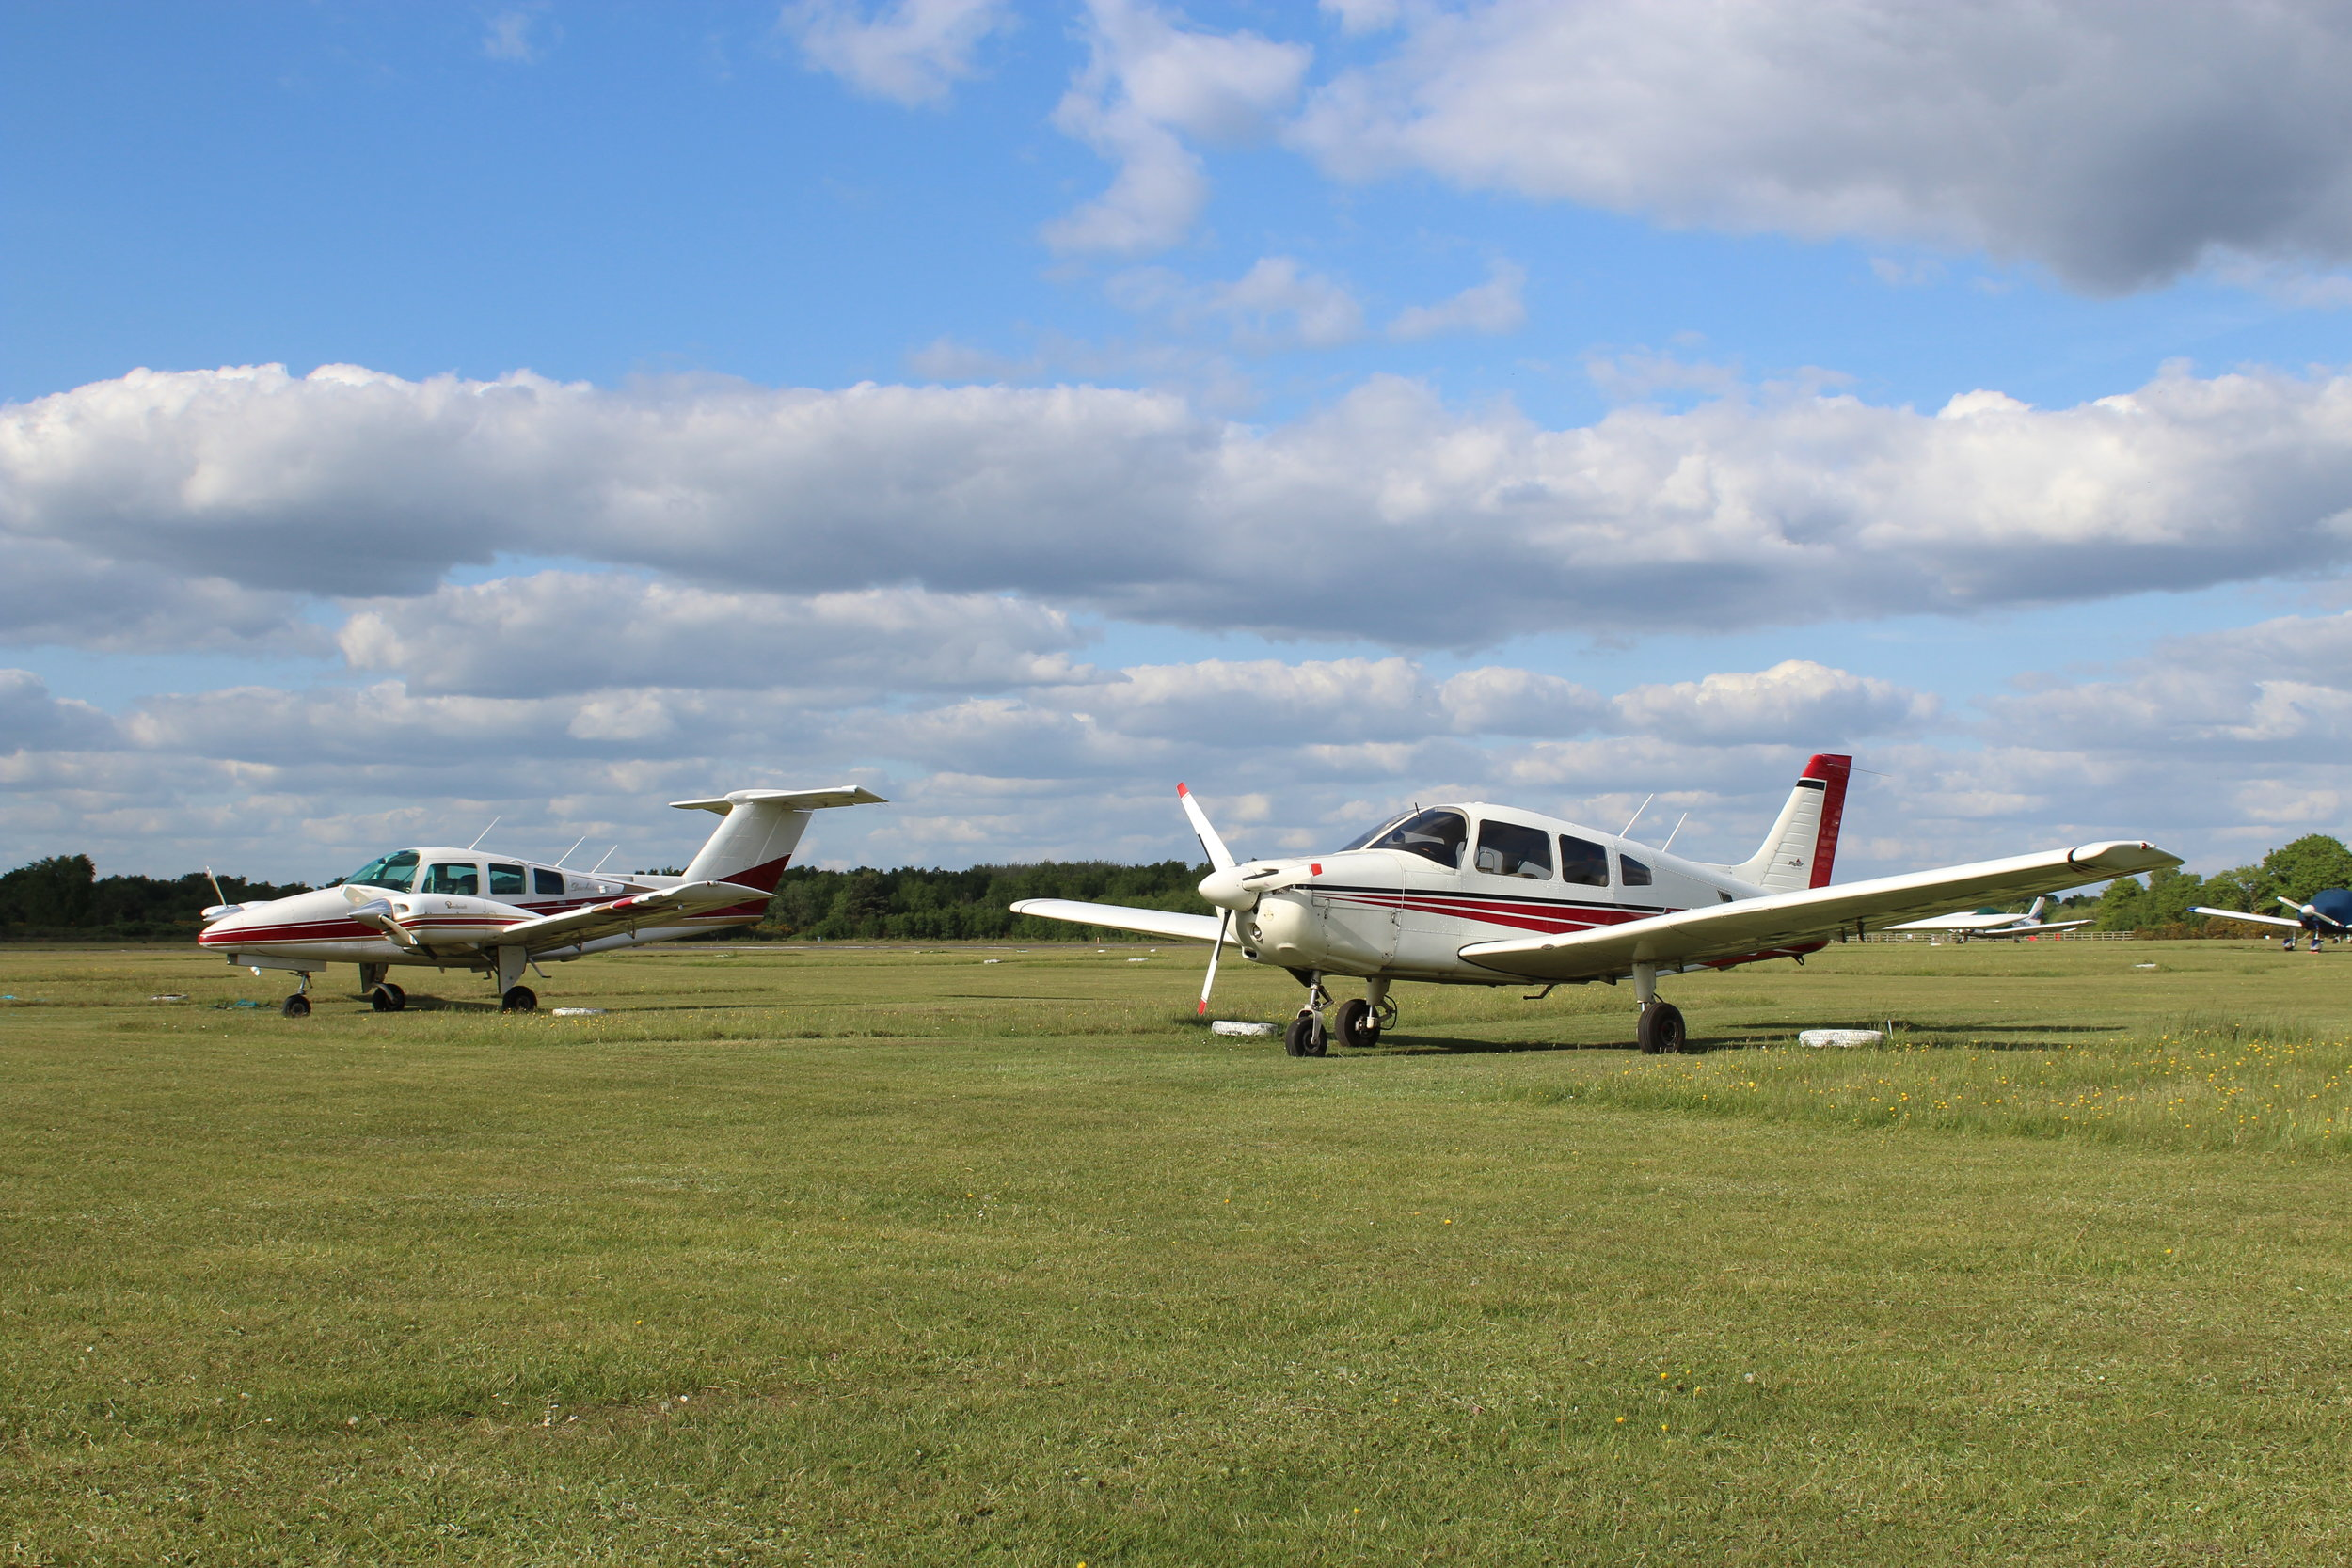 Get Your Wings   LEARN TO FLY   At one of our resident flying schools, for fixed-wing, helicopters, and microlights   Take To The Sky